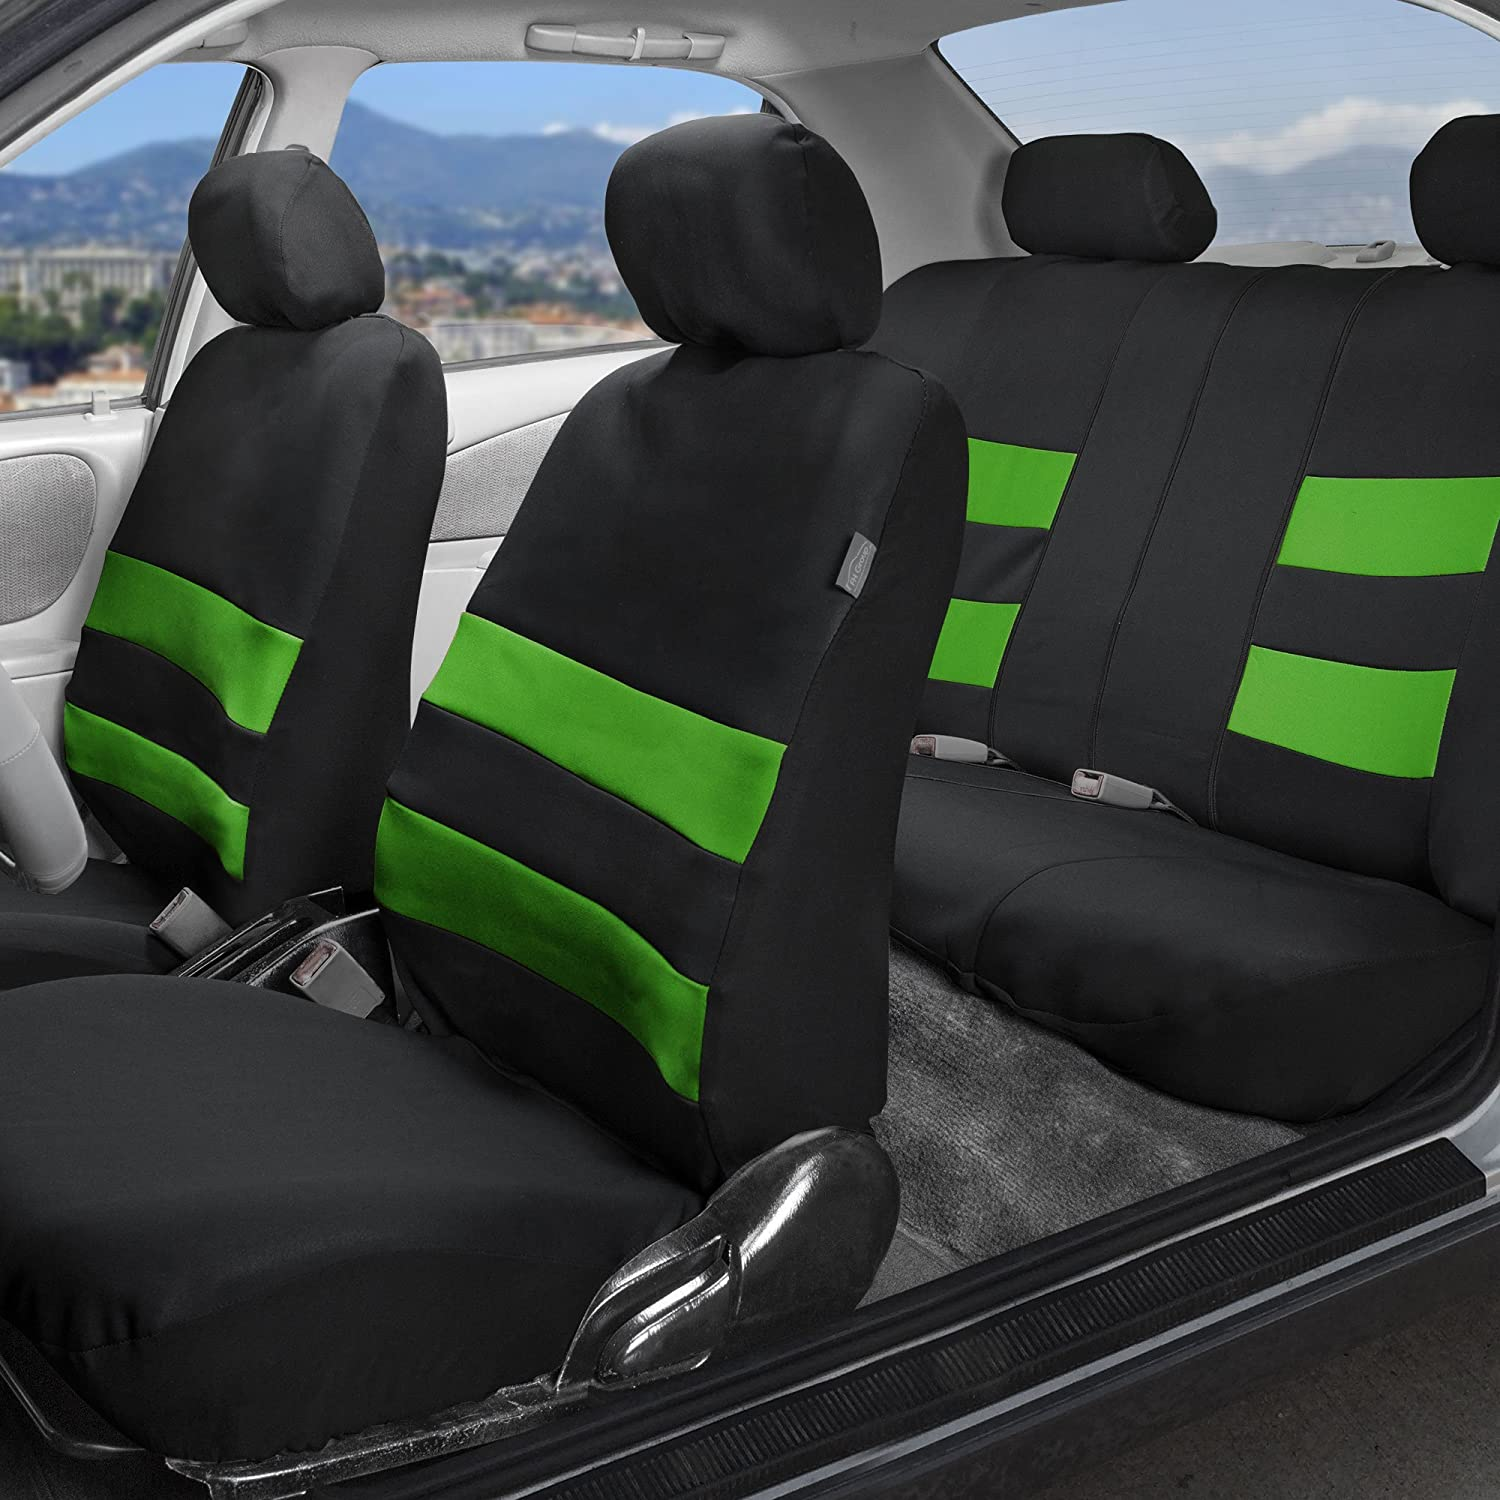 Cushion FH Group FB087ORANGE115 Premium Neoprene Seat Cover Water Resistant//Airbag//Split Bench Compatible